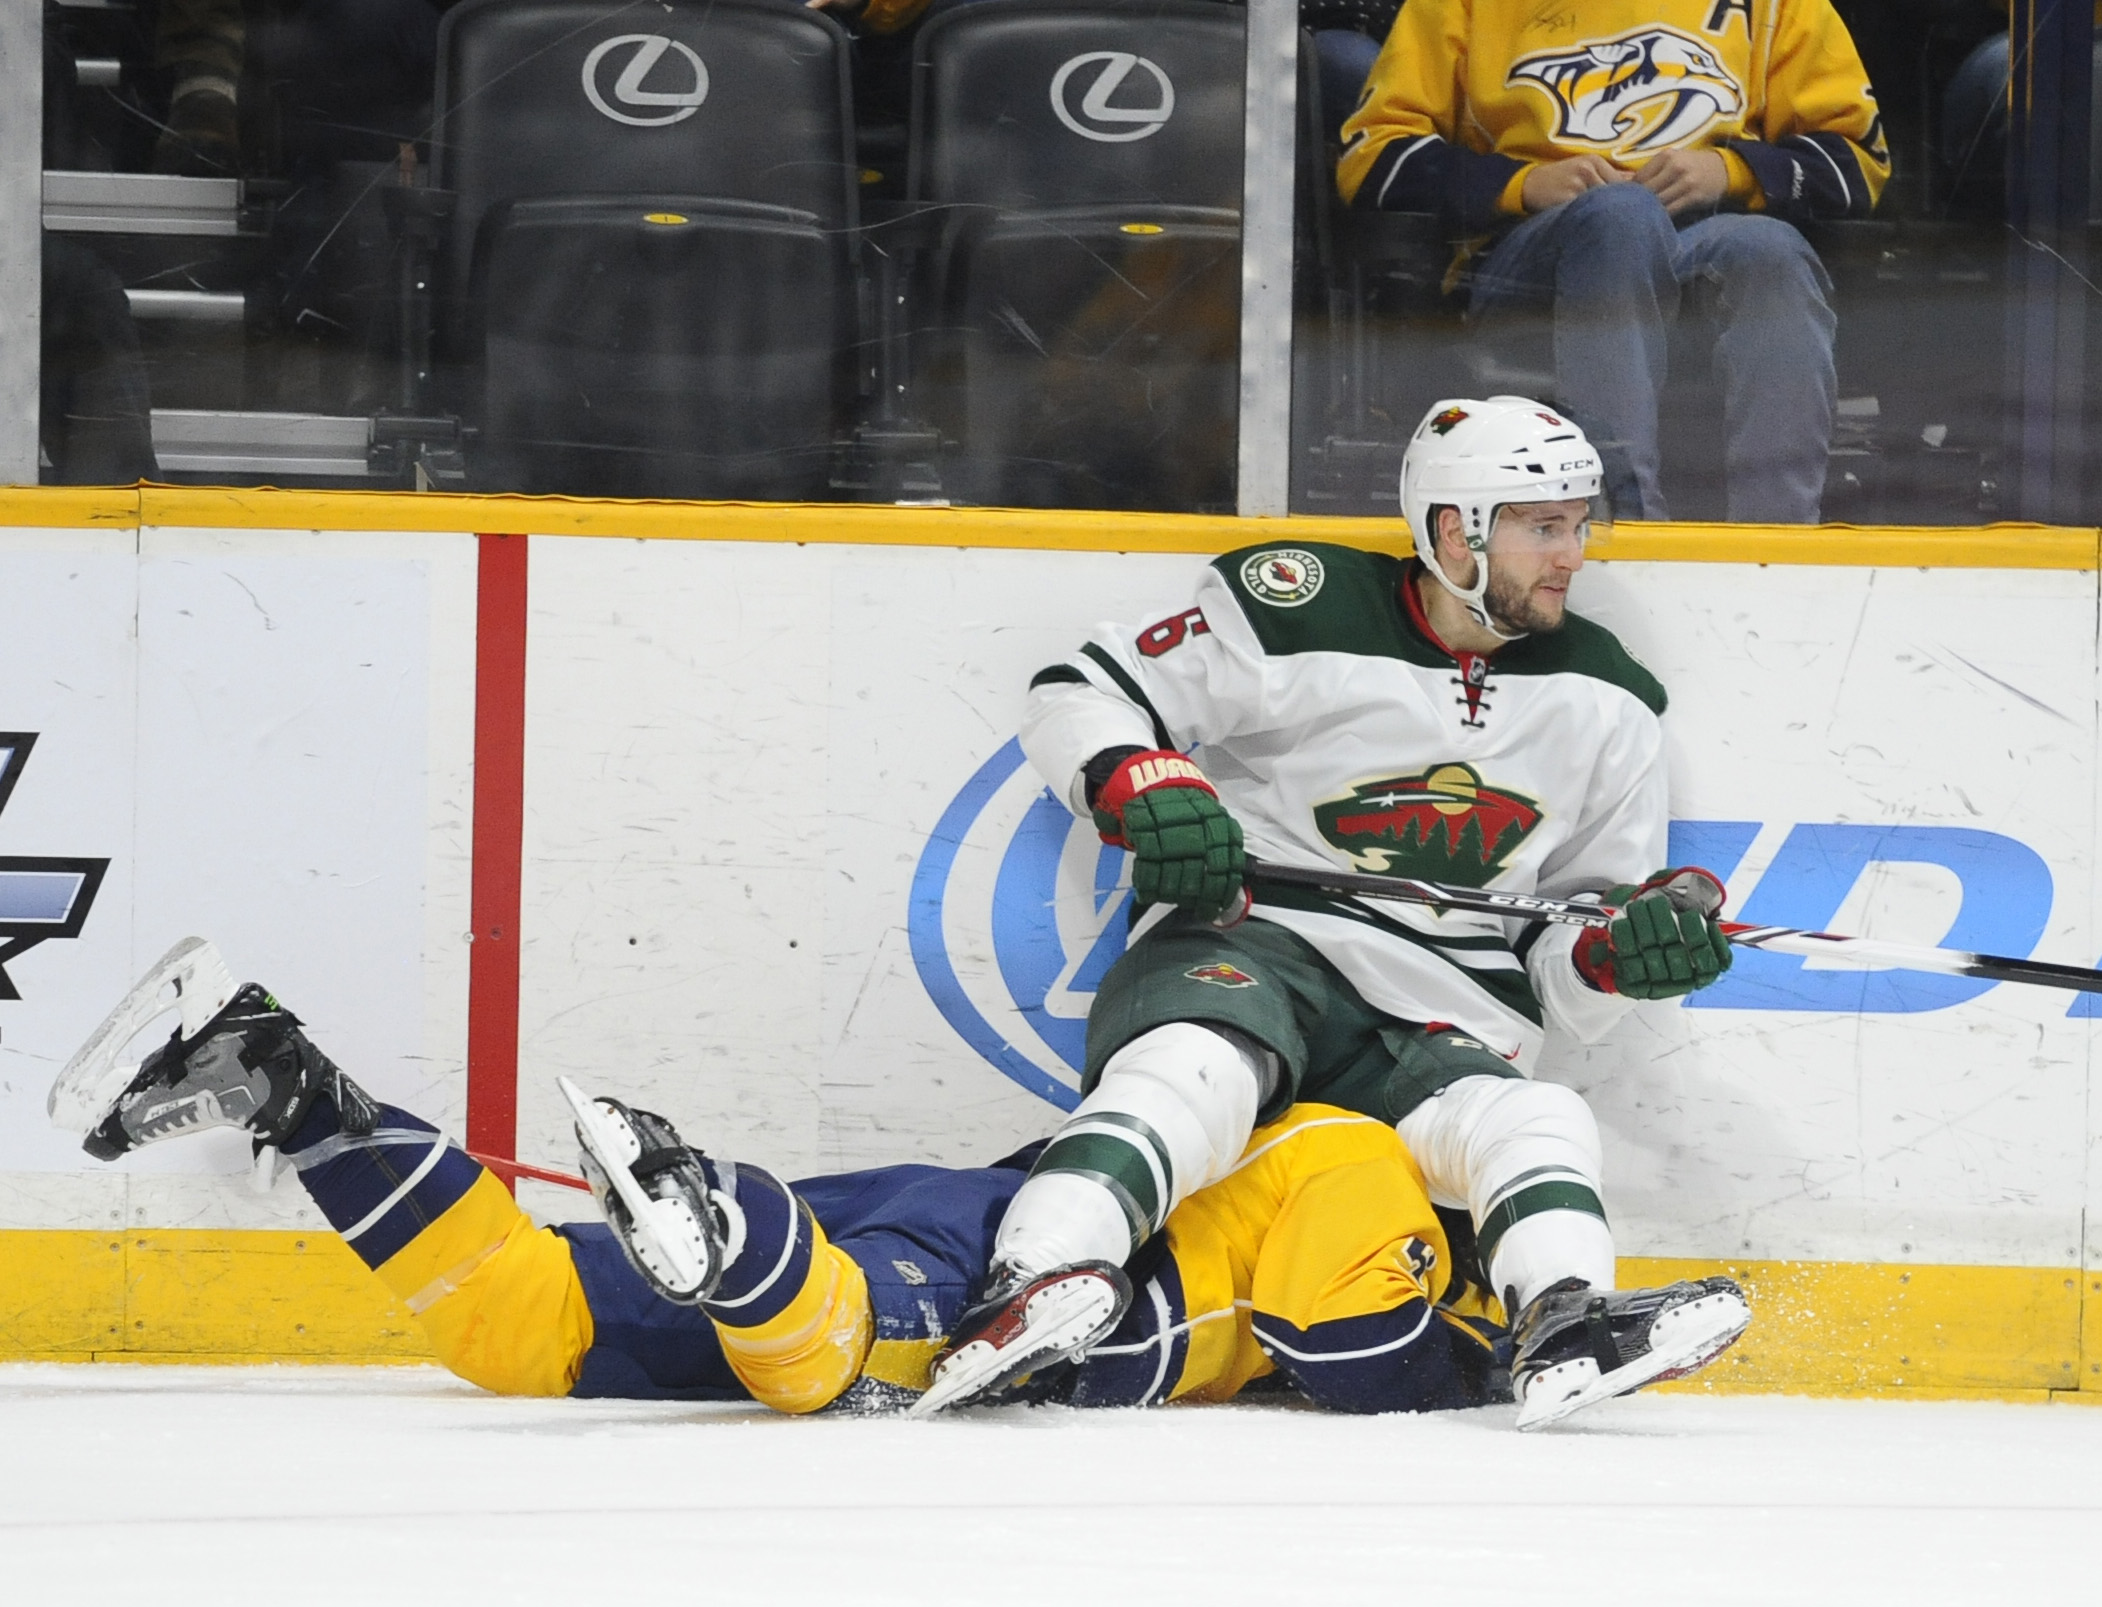 NHL: Minnesota Wild at Nashville Predators